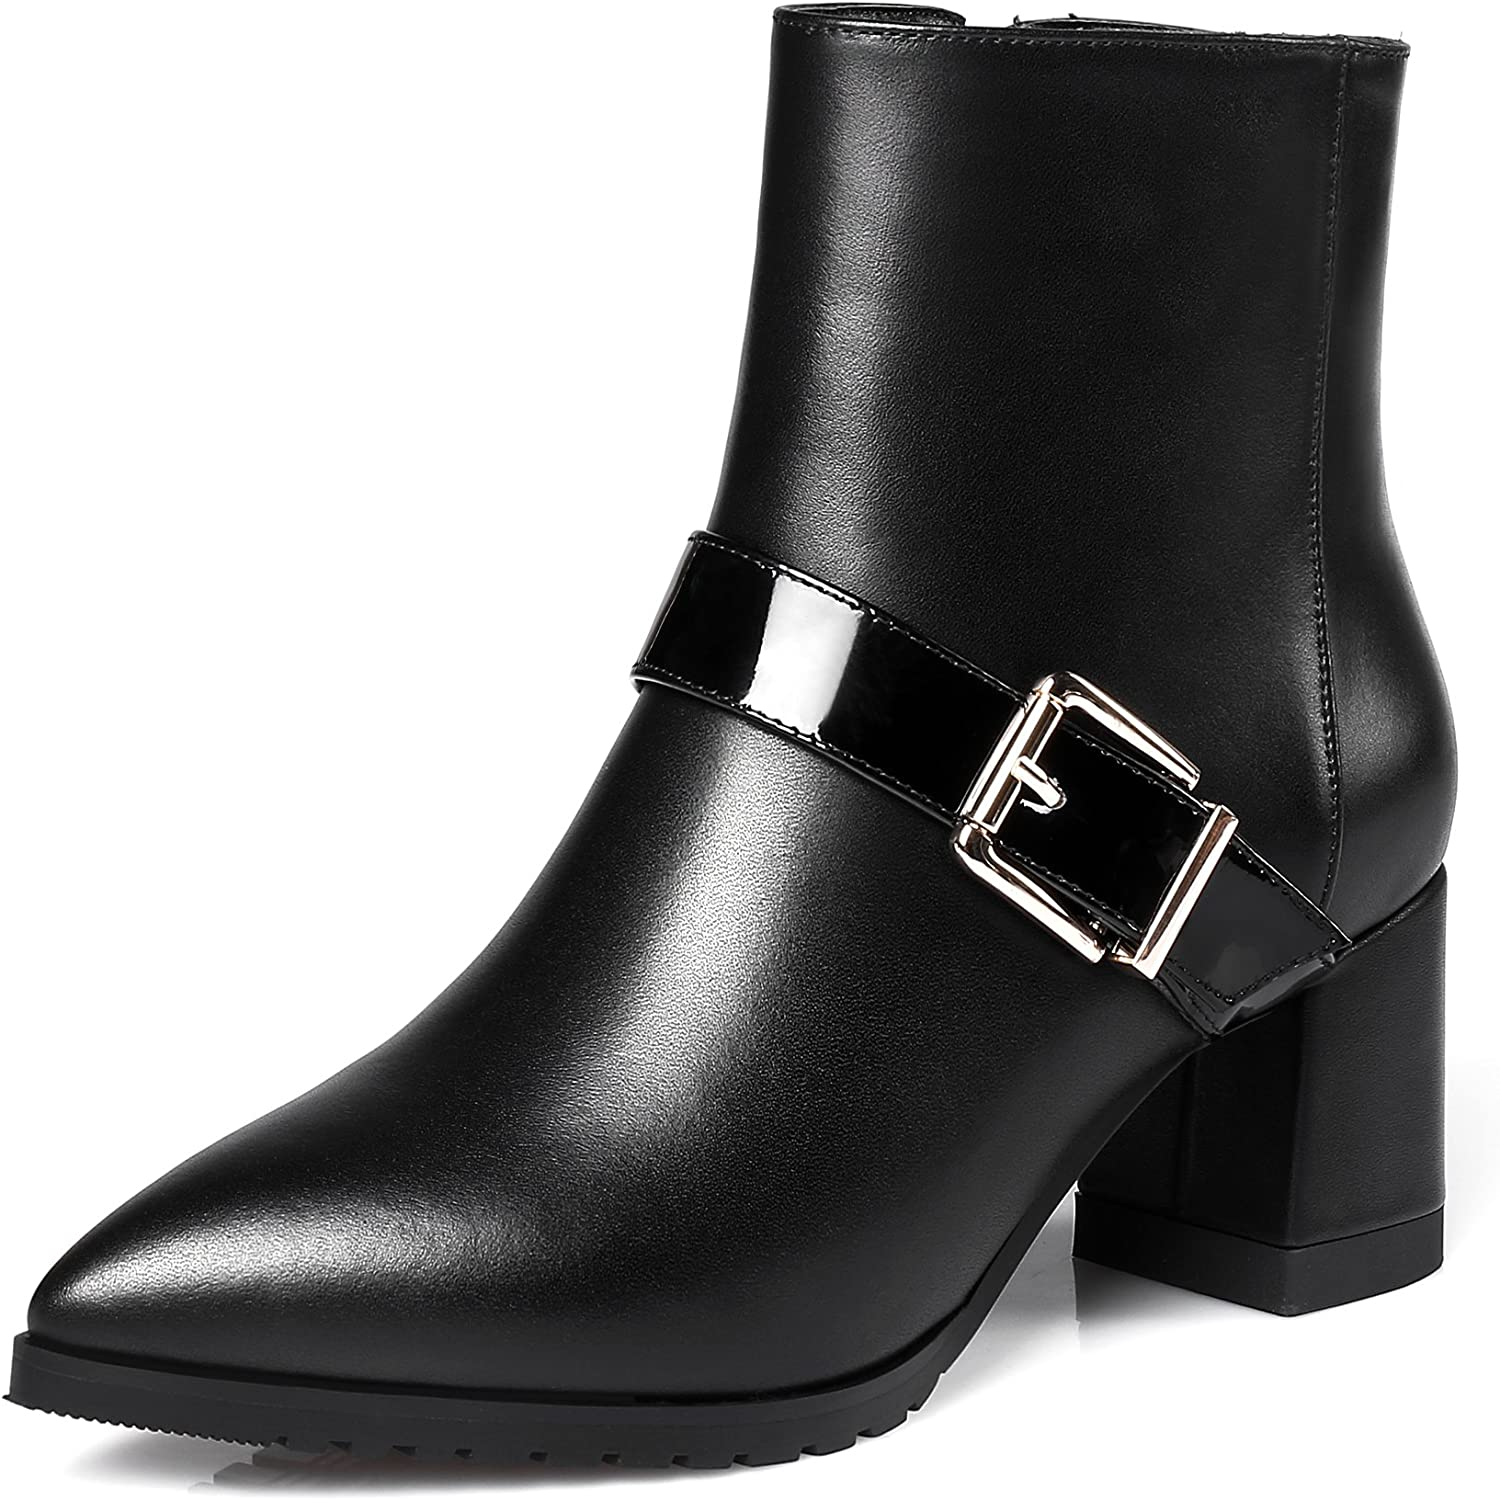 JIEEME Ladies Zip Pointed Toe Square Heel Genuine Leather Buckle Strap Women Boots Sexy High Heels Black Ankle Boots